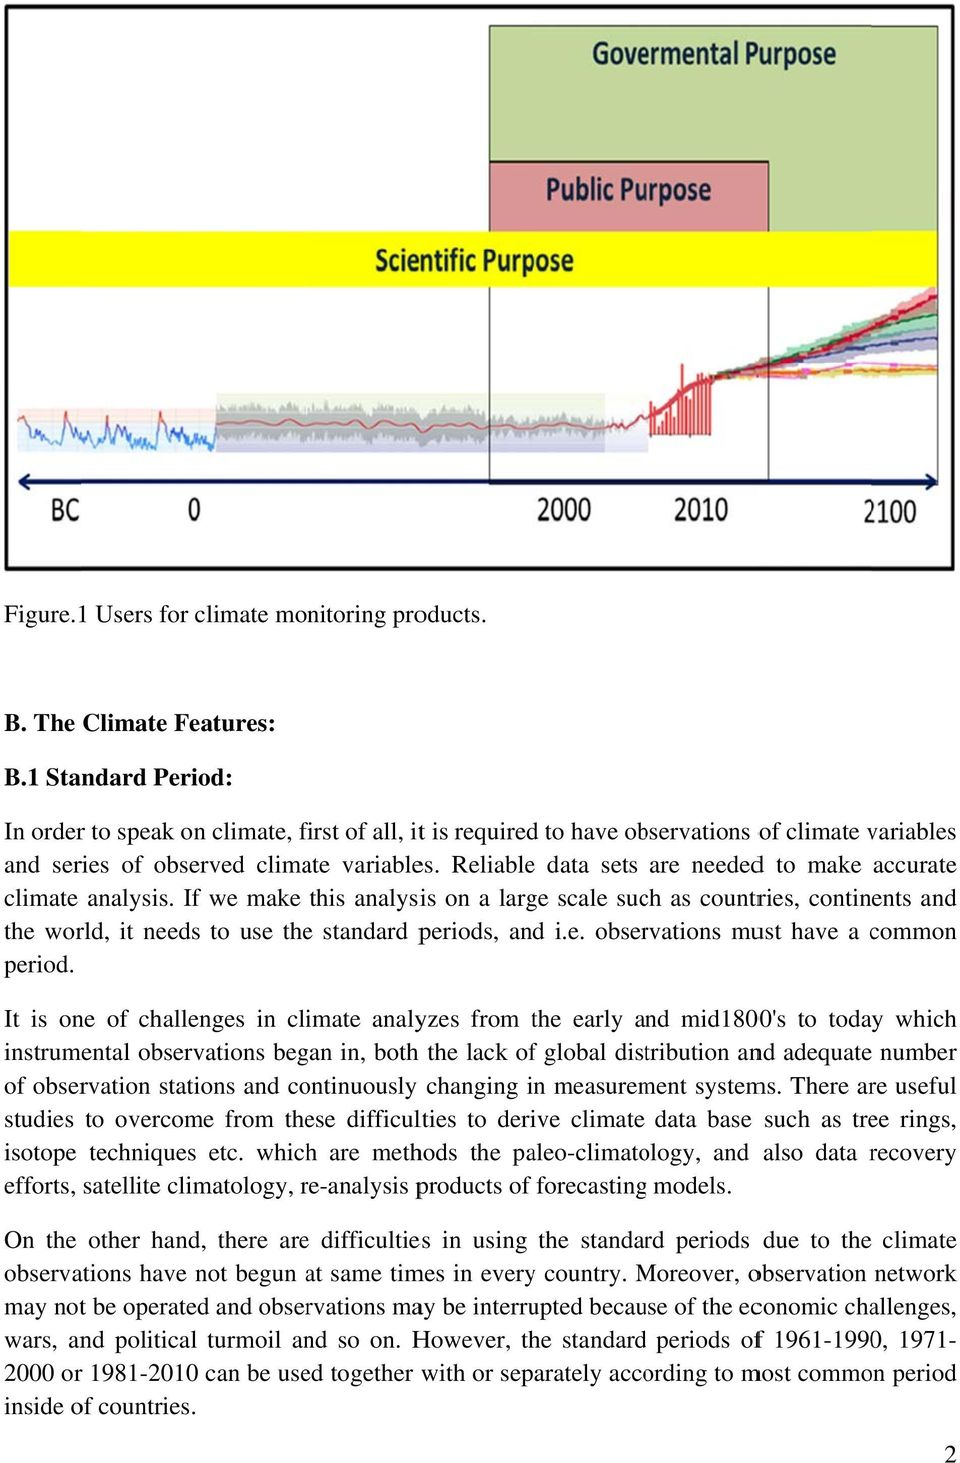 Reliablee data sets are neededd to make accurate climate analysis. If we make this analysis on a large scale such as countries, continents and the world, it needs to use the standard periods, and i.e. observations must have a common period.